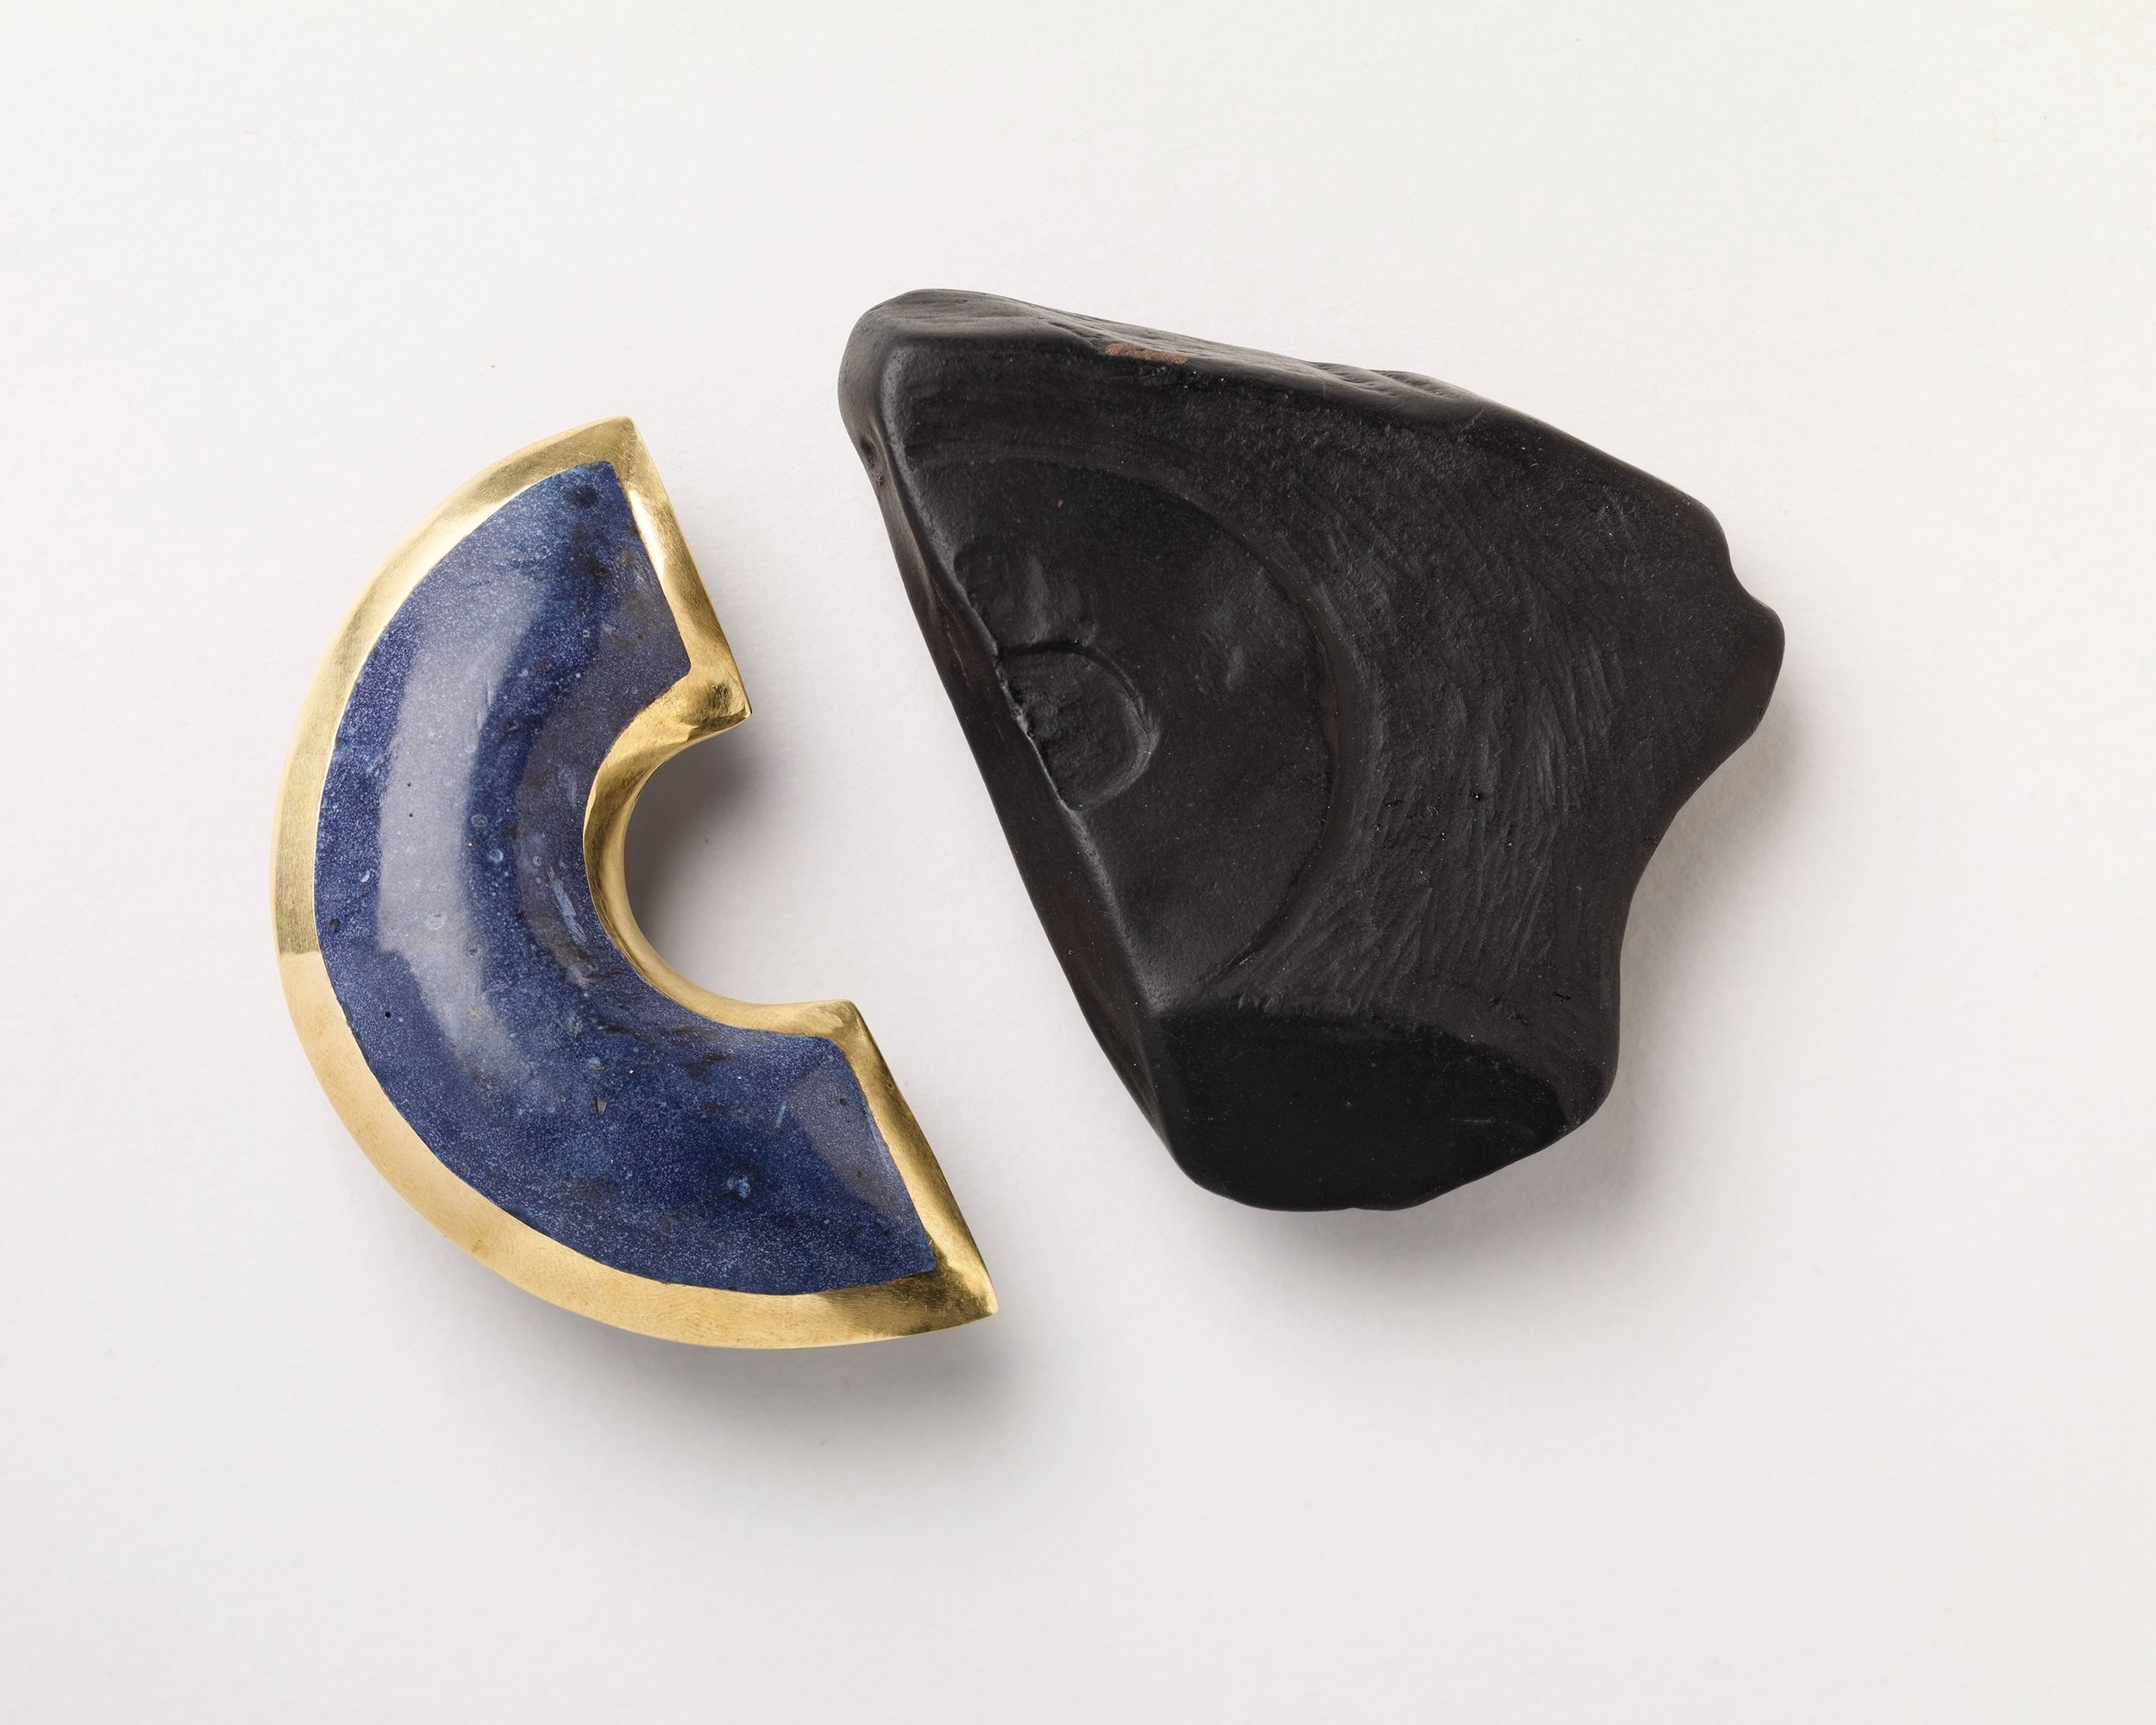 Azure and Woad Brooches, brass, fools lapis lazuli, silver, jet - Photo Credit: Shannon Tofts